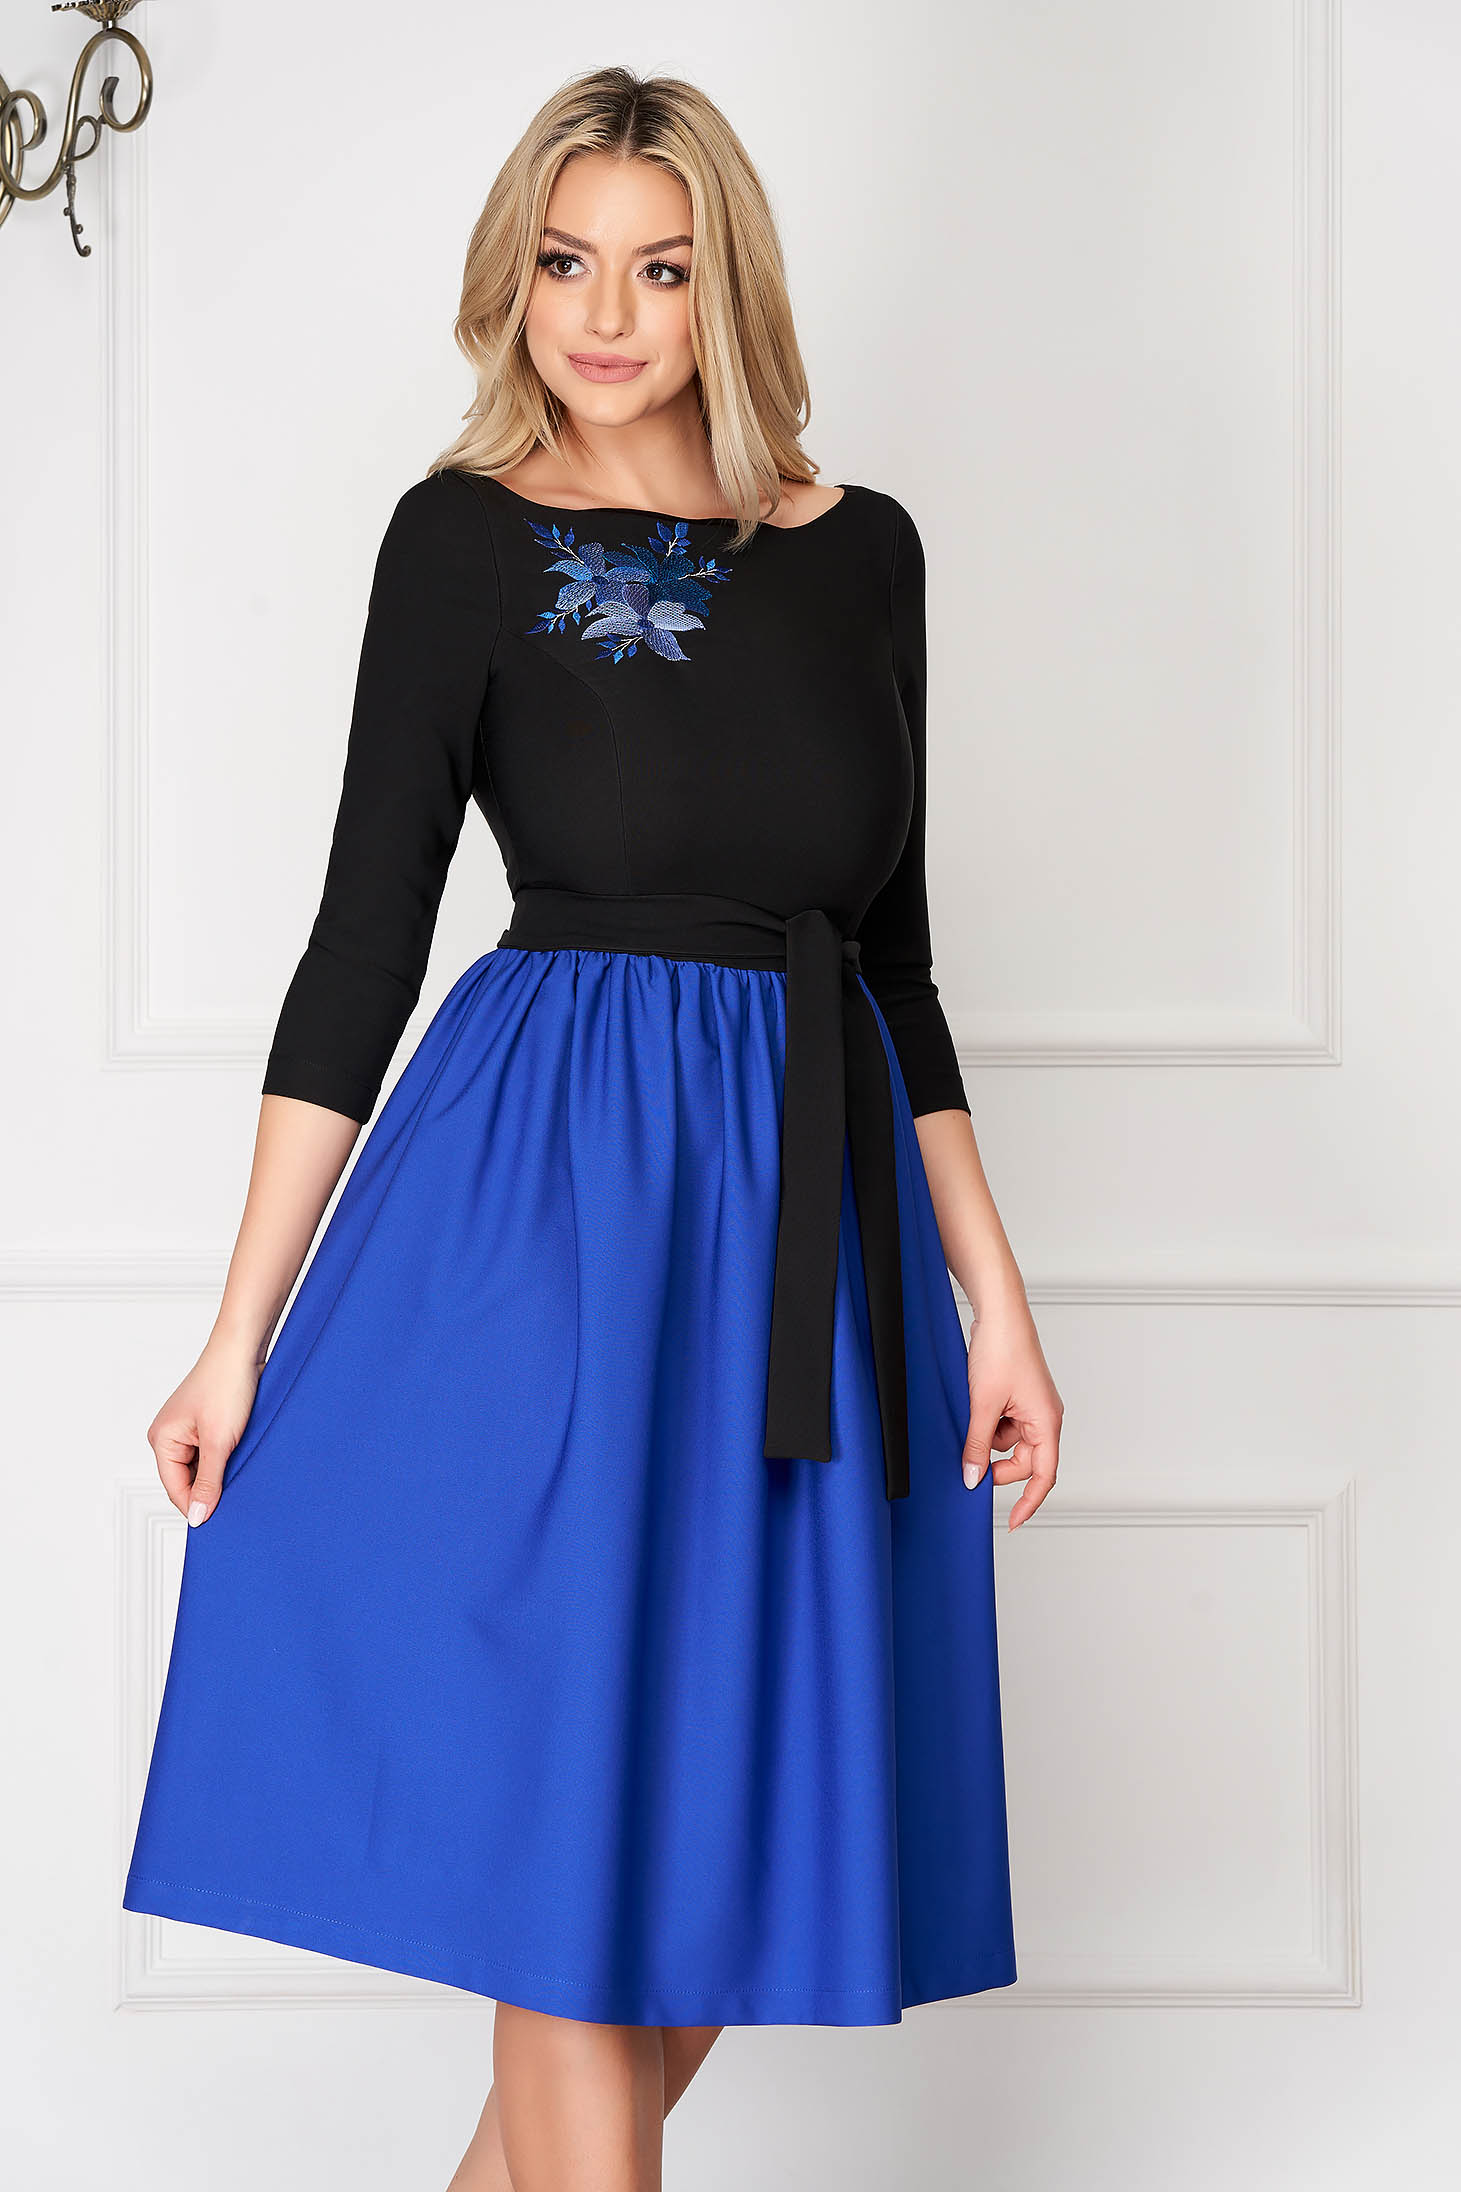 Blue StarShinerS midi occasional cloche dress cloth with 3/4 sleeves embroidery details